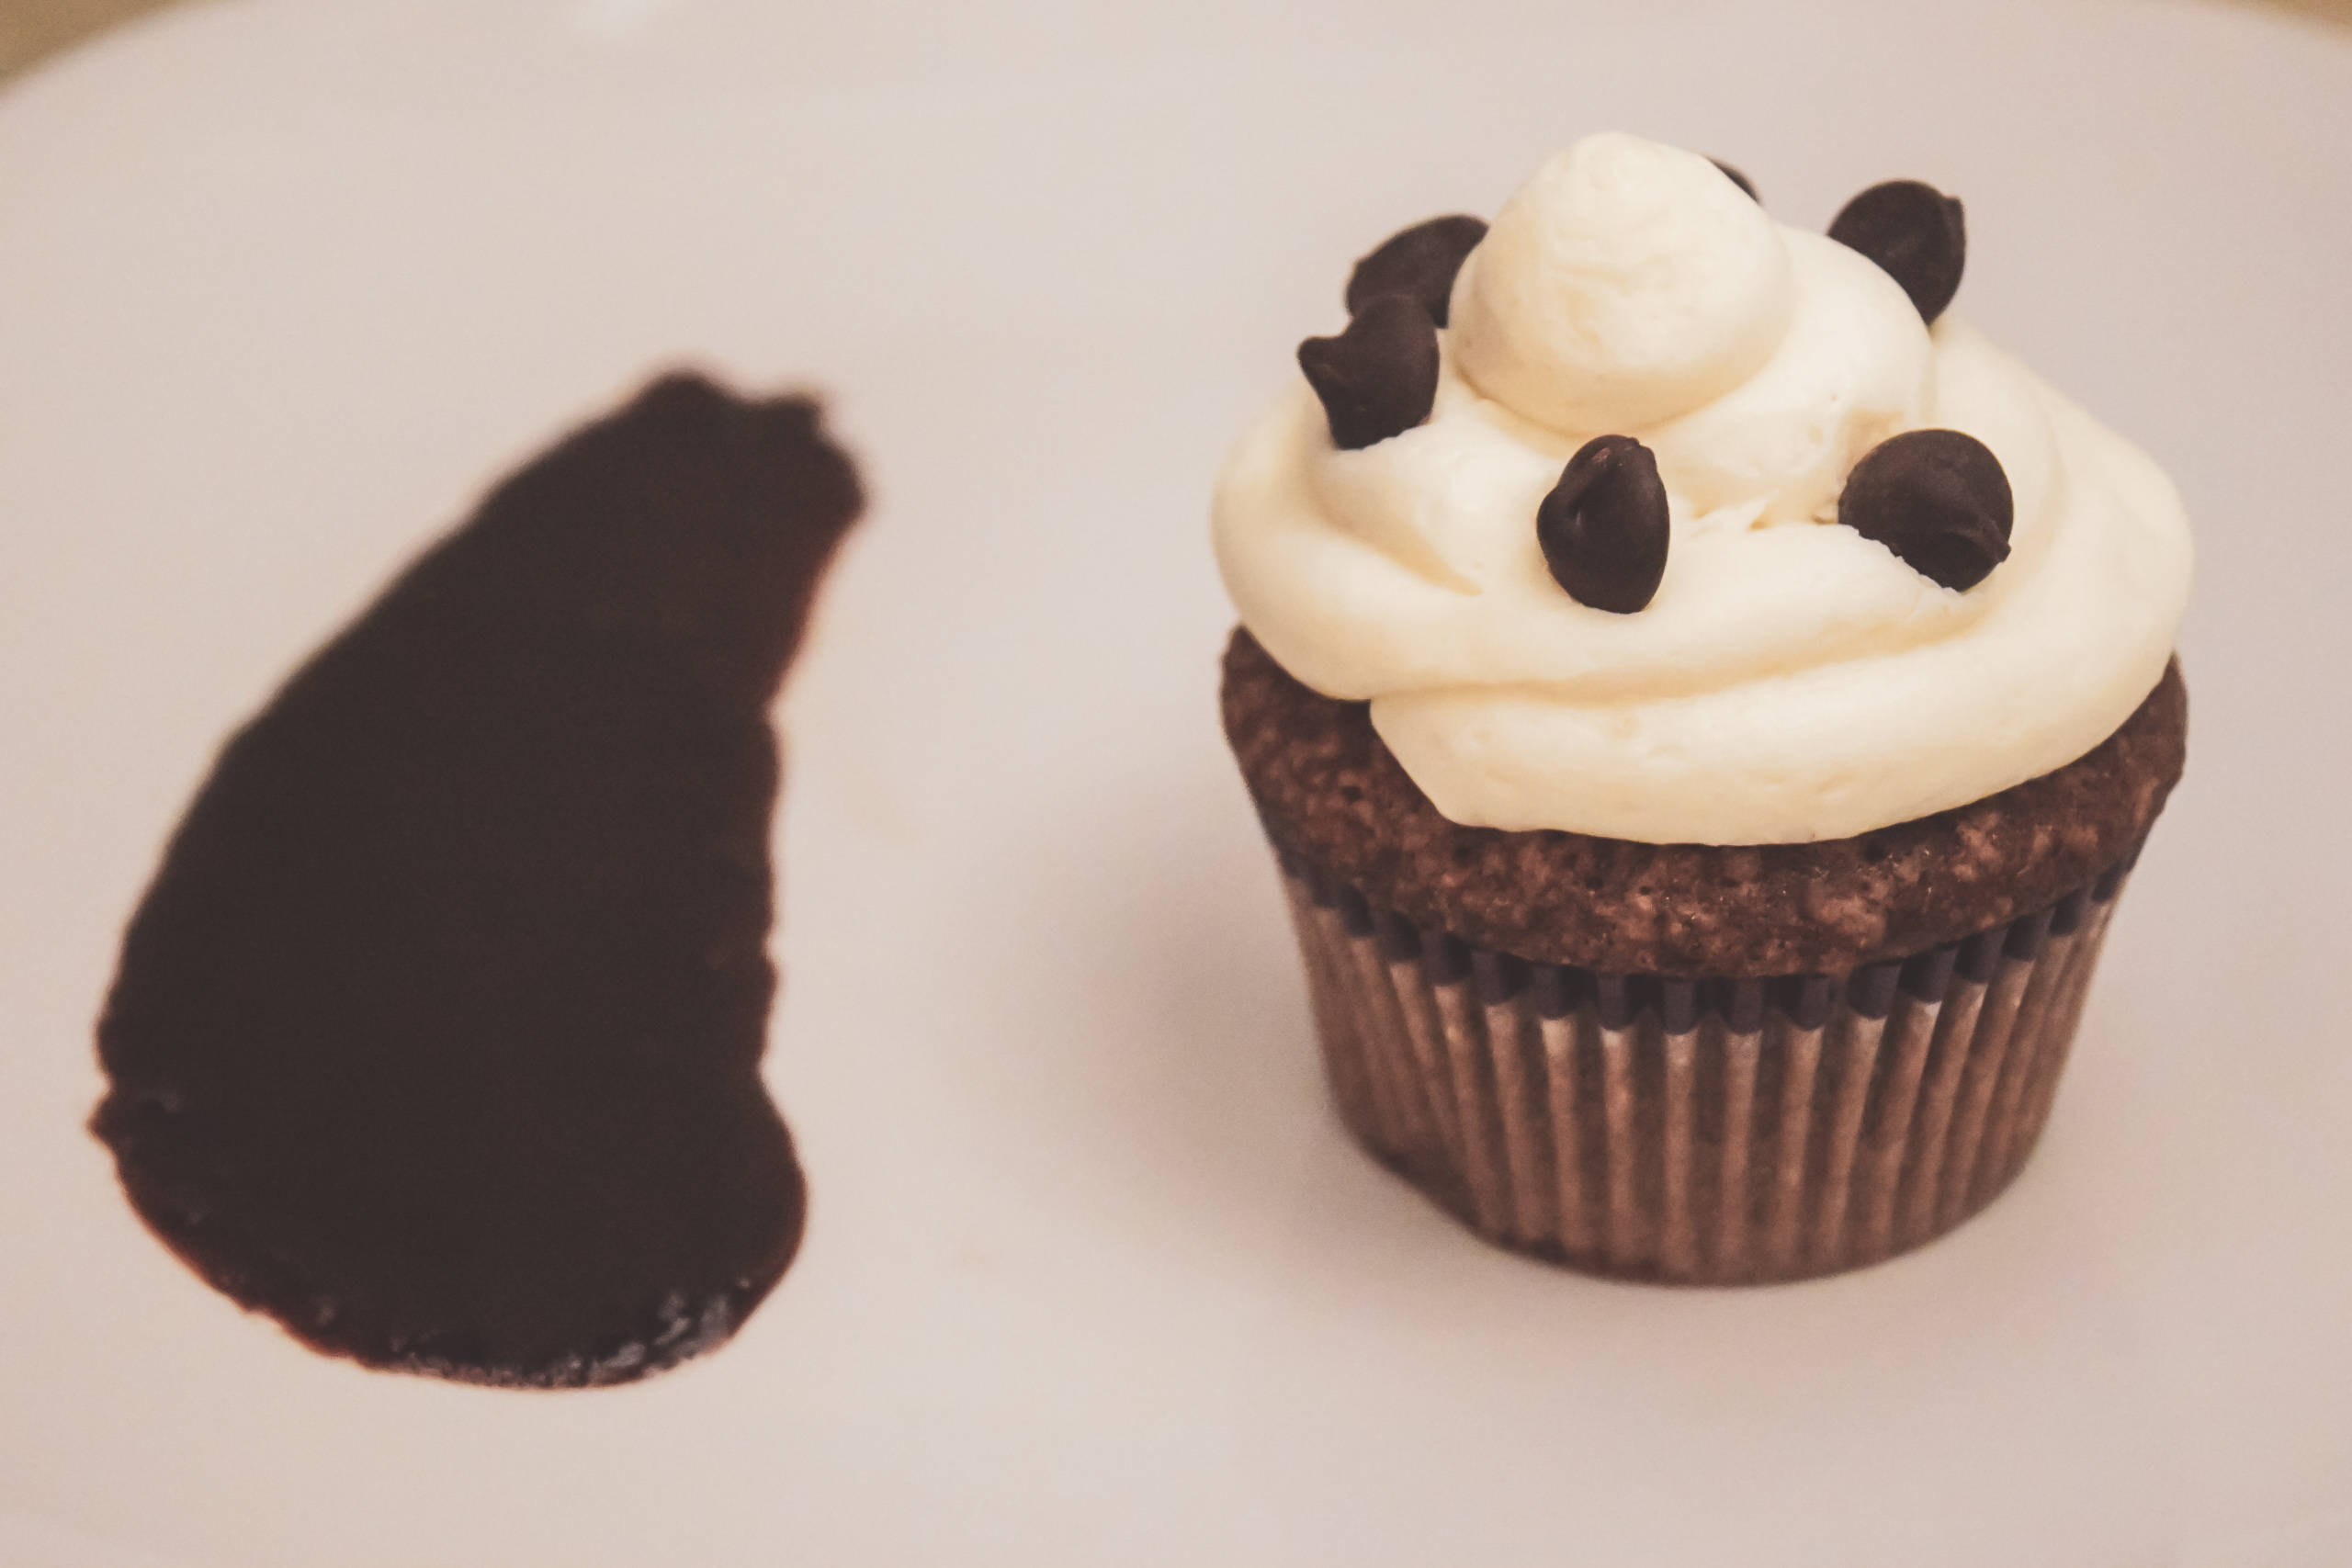 Christopher's Bakery | Dessert | Baked Good | Cupcake | Cocoa Pound | Chocolate